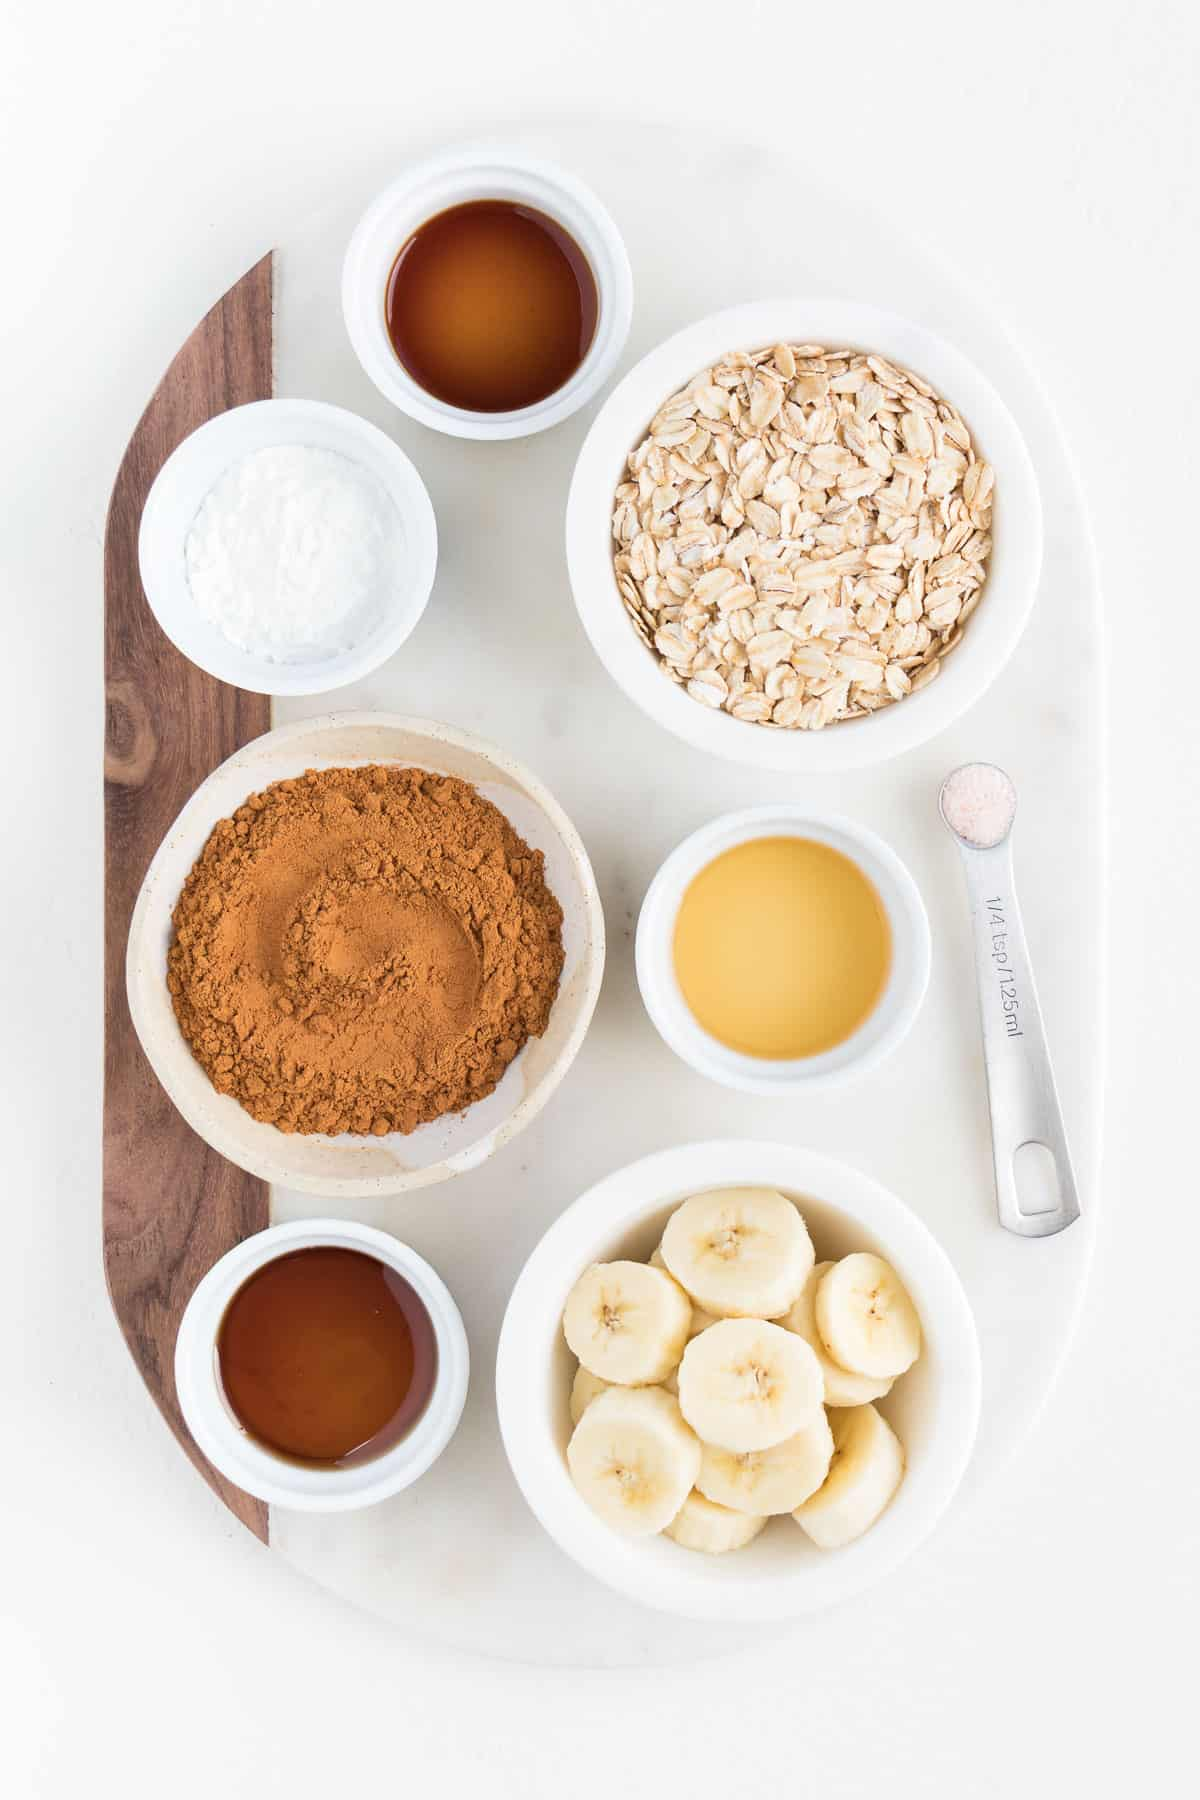 oats, cinnamon, maple syrup, sliced banana, and vanilla extract in small white bowls on a marble cutting board